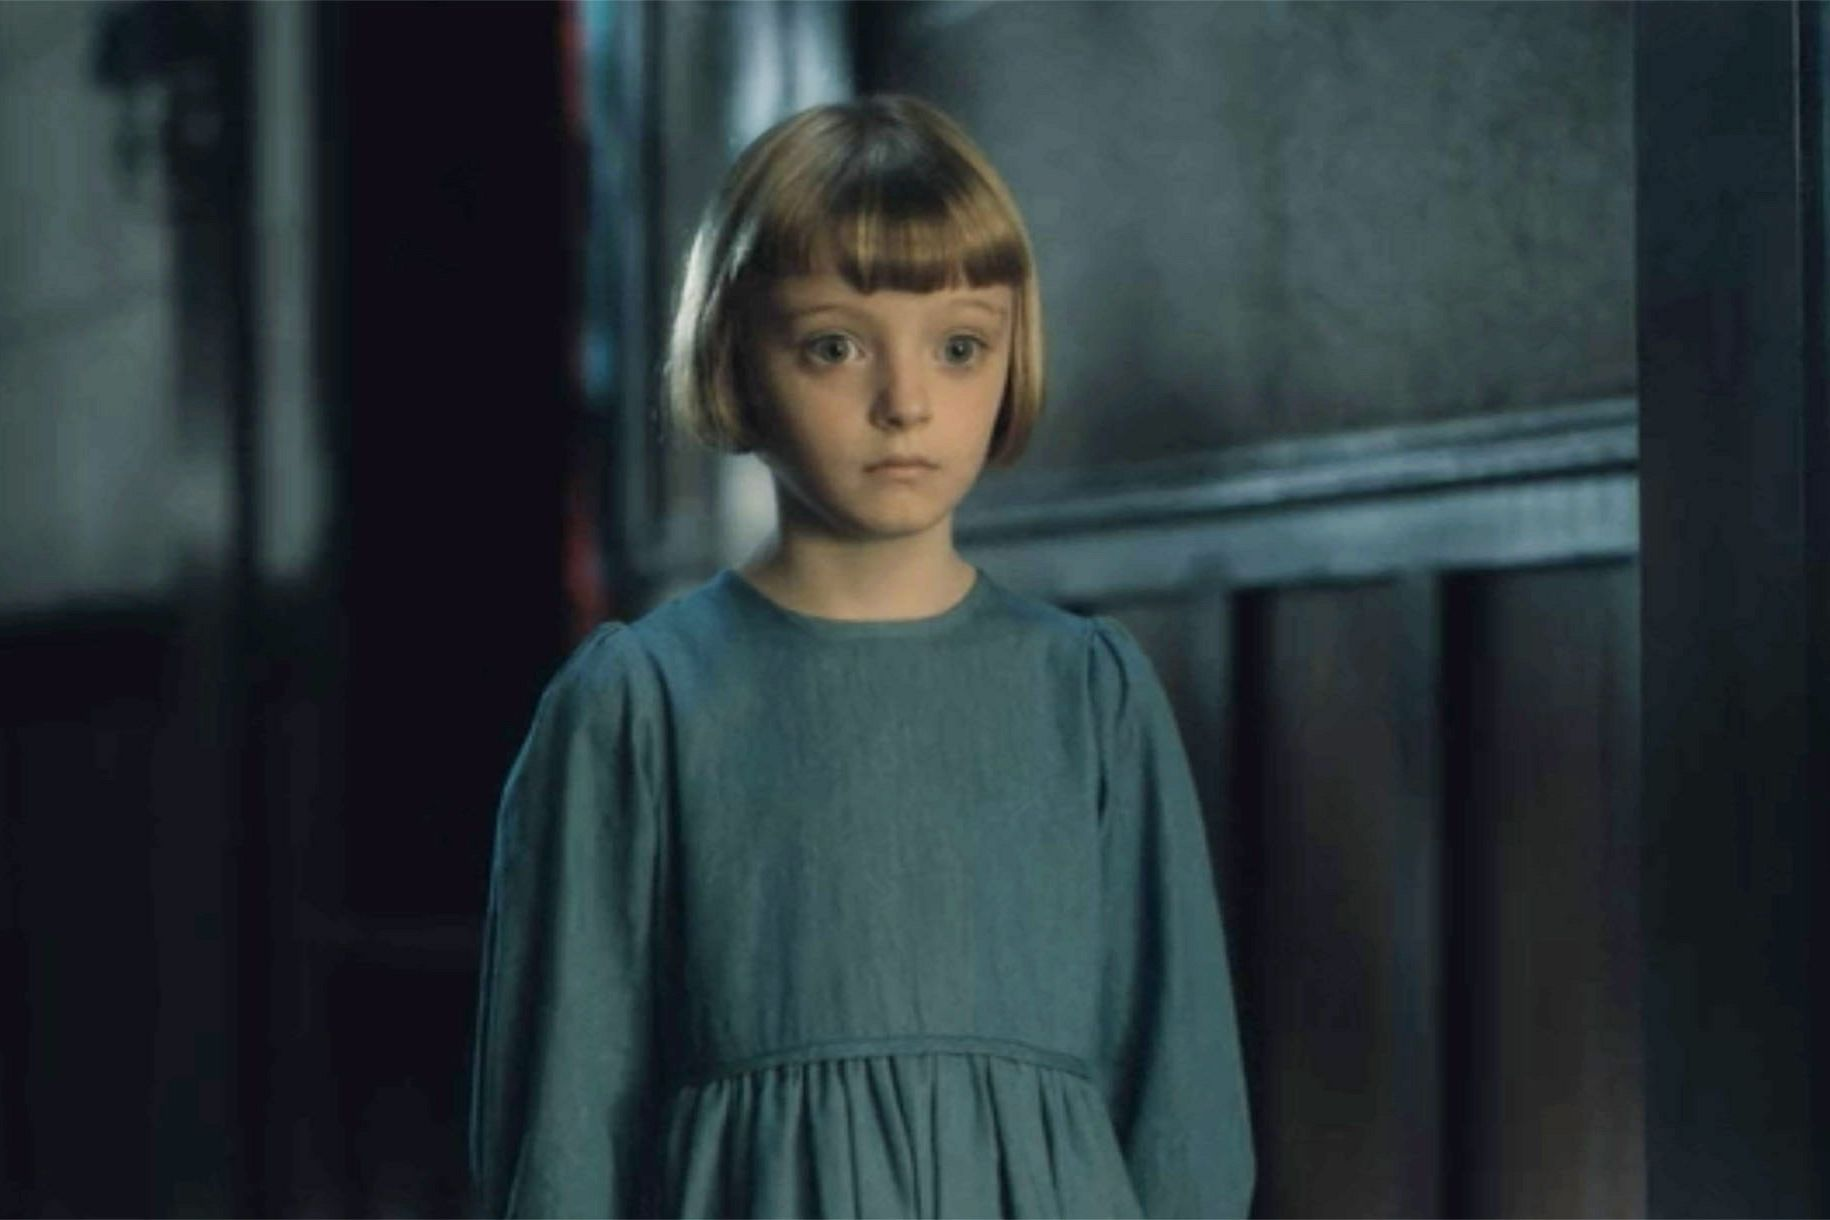 Abigail in The Haunting of Hill House